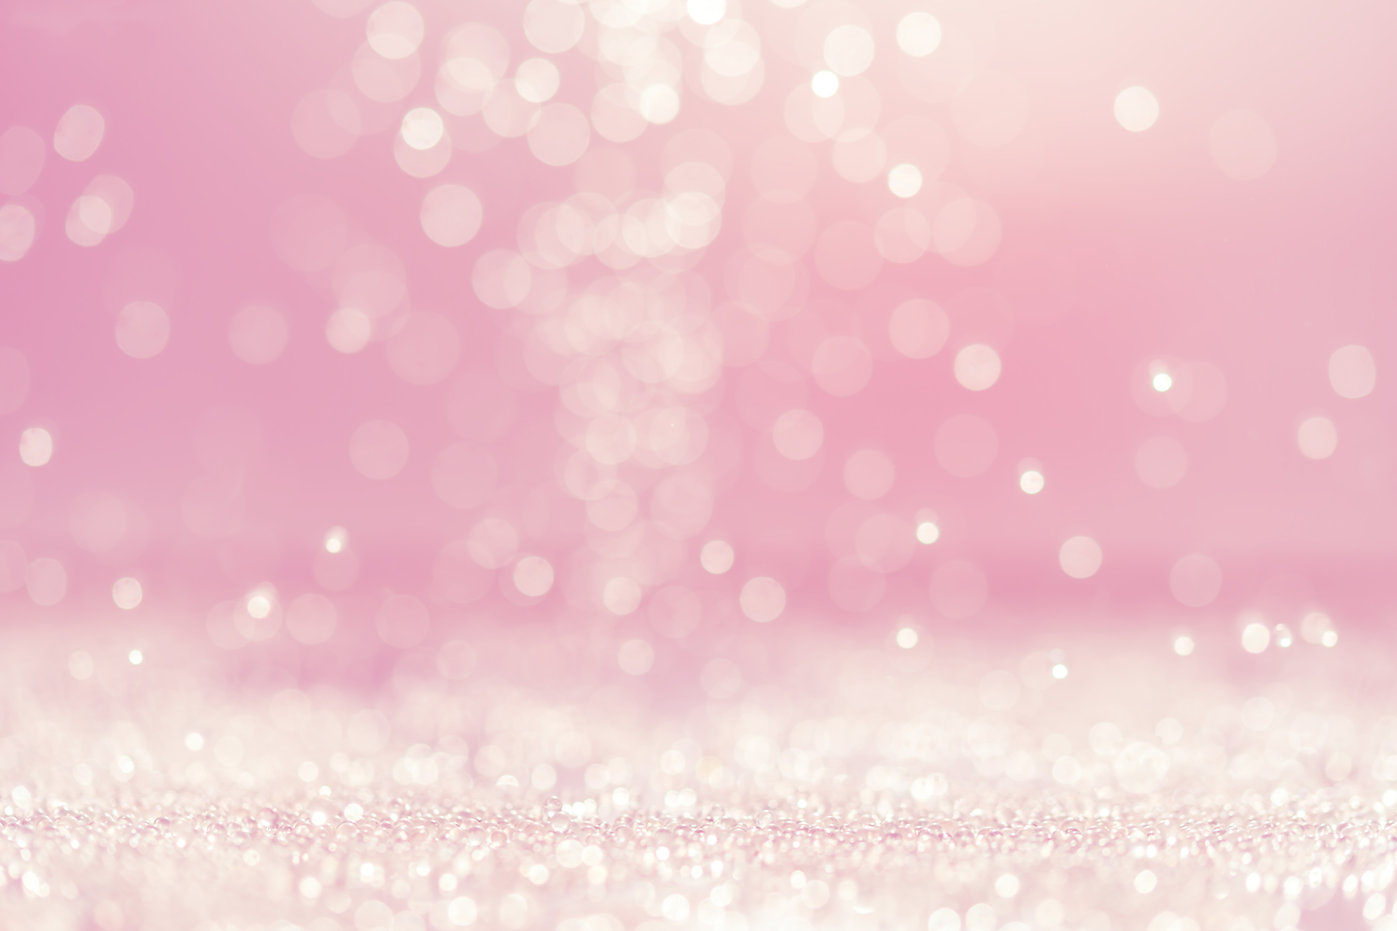 Pink Abstract bokeh background.jpg